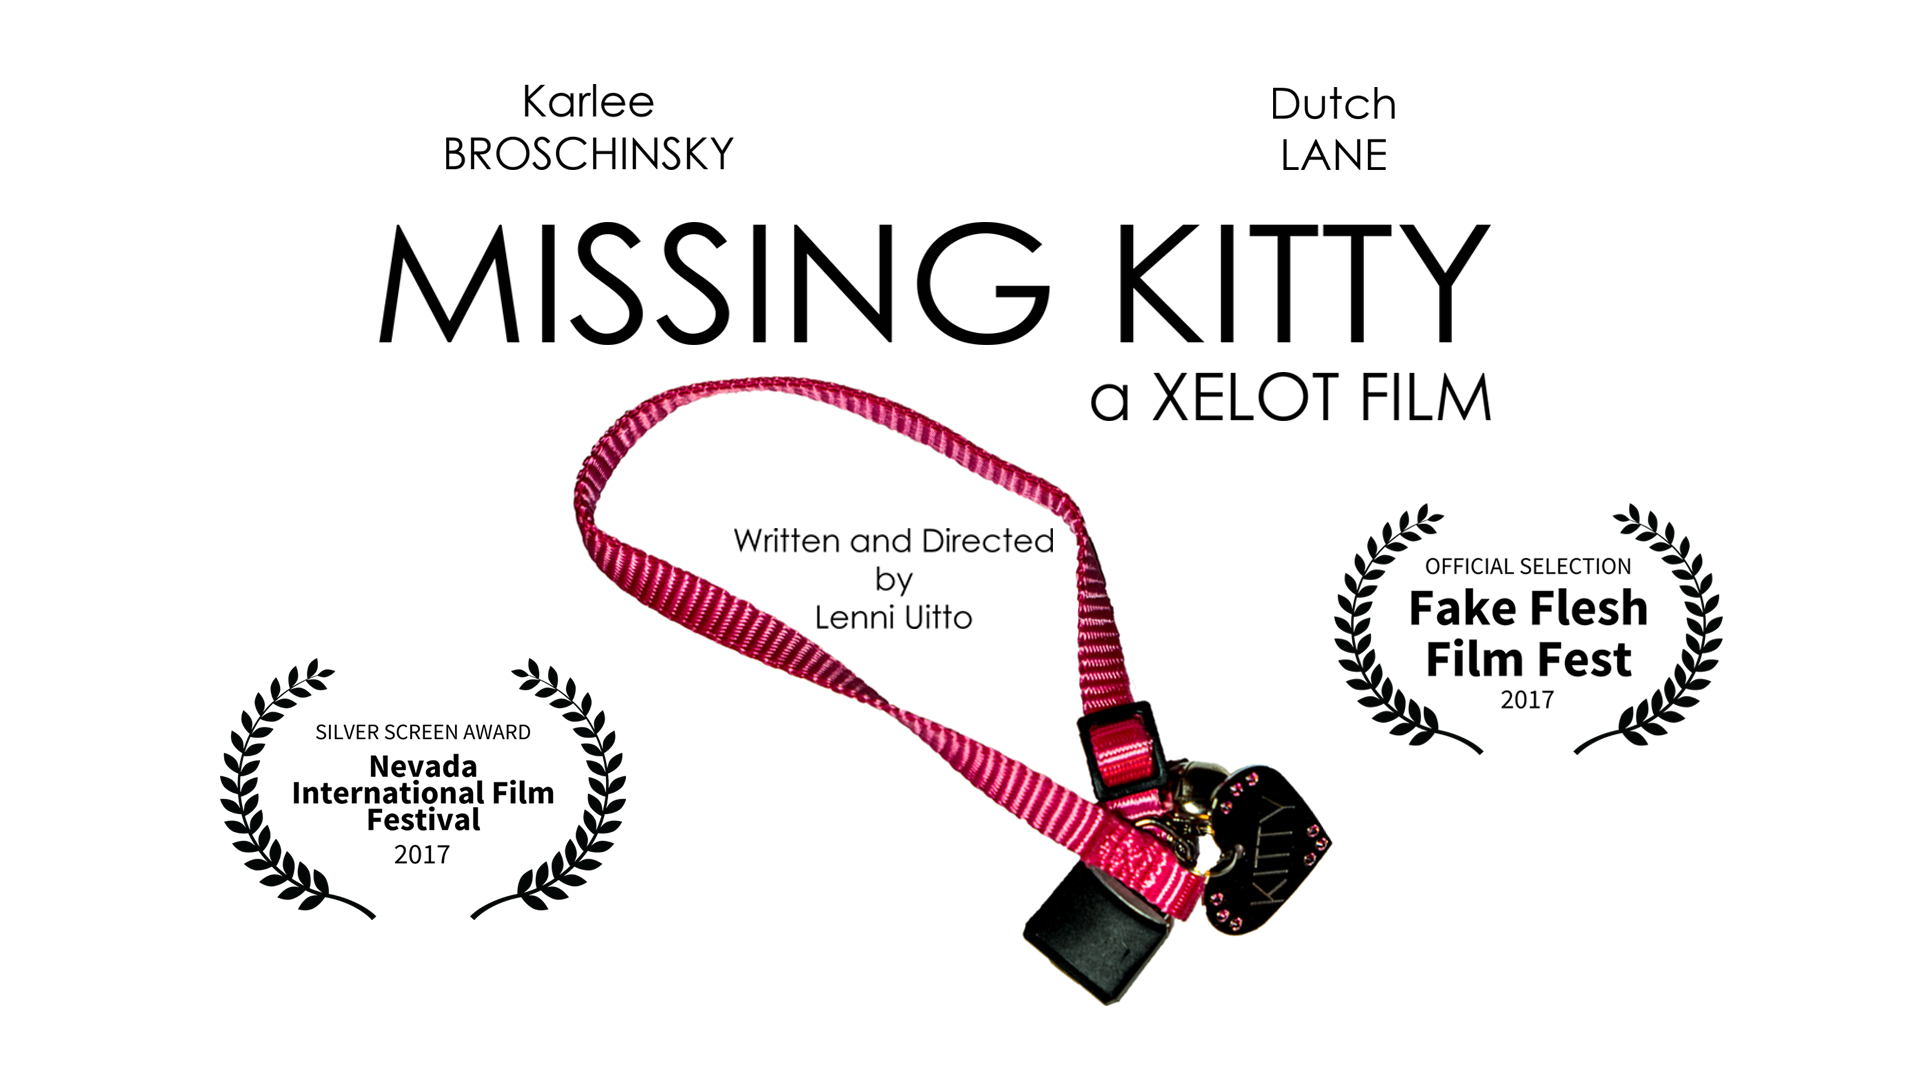 Missing Kitty(2017)   Short Film Competition -  Silver Screen Award  - Nevada International Film Festival( 2017 )  Awarded  Best Actress Under 18 Years Old at Utah Film Awards(2018) Official Selection of Port Orchard Film Festival(2018) Official Selection of Fake Flesh Film Fest( 2017 ) Nominated Best Short Made in Utah at Utah Film Awards(2018) Nominated Best Makeup at Utah Film Awards(2018) Nominated Best Supporting Actress at Utah Film Awards(2018) Nominated Best Supporting Actor at Utah Film Awards(2018)